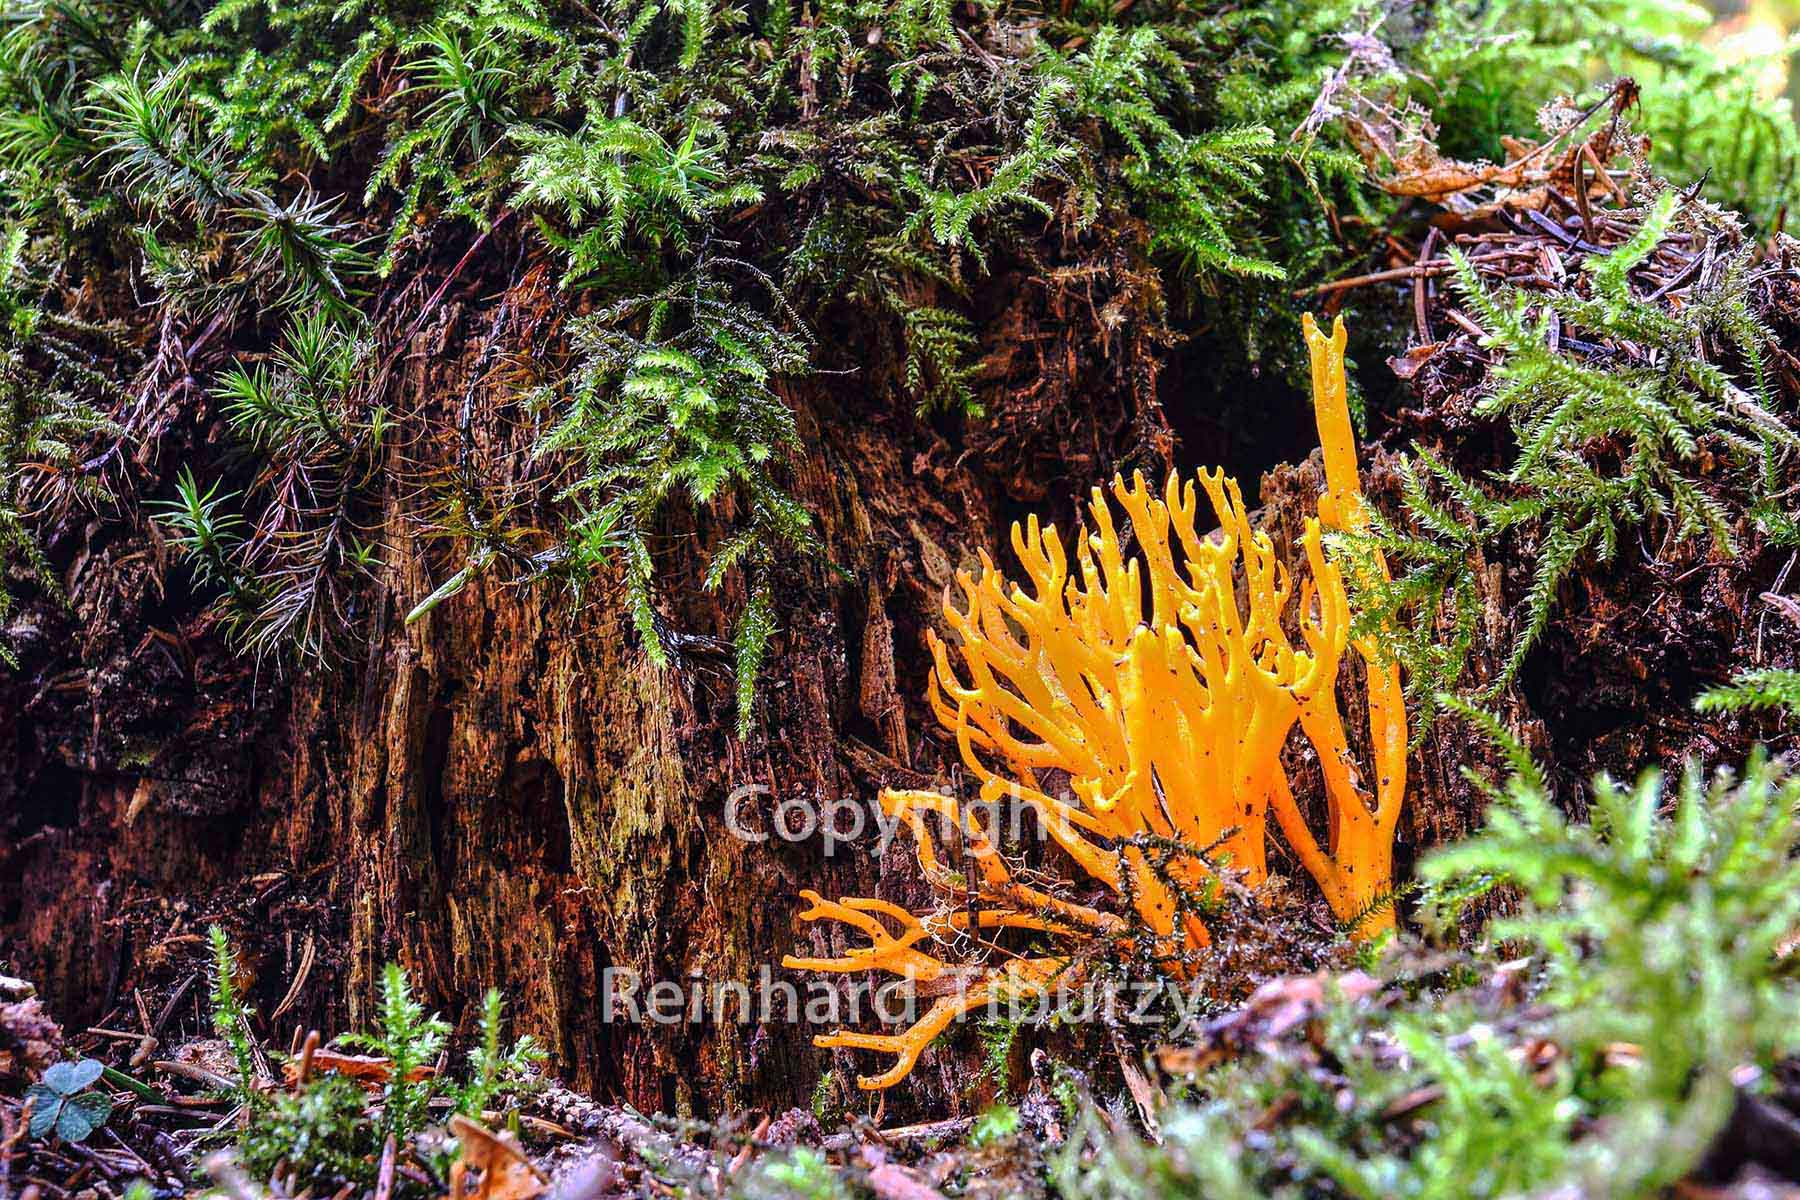 yellow stagshorn, tiny fungus growing on a decaying conifer stump, fungus, fungi, calocera viscosa, tiny, yellow, decaying, conifer, stump, pilz, mushroom, Ziegenbart , klebriger Hörnling,